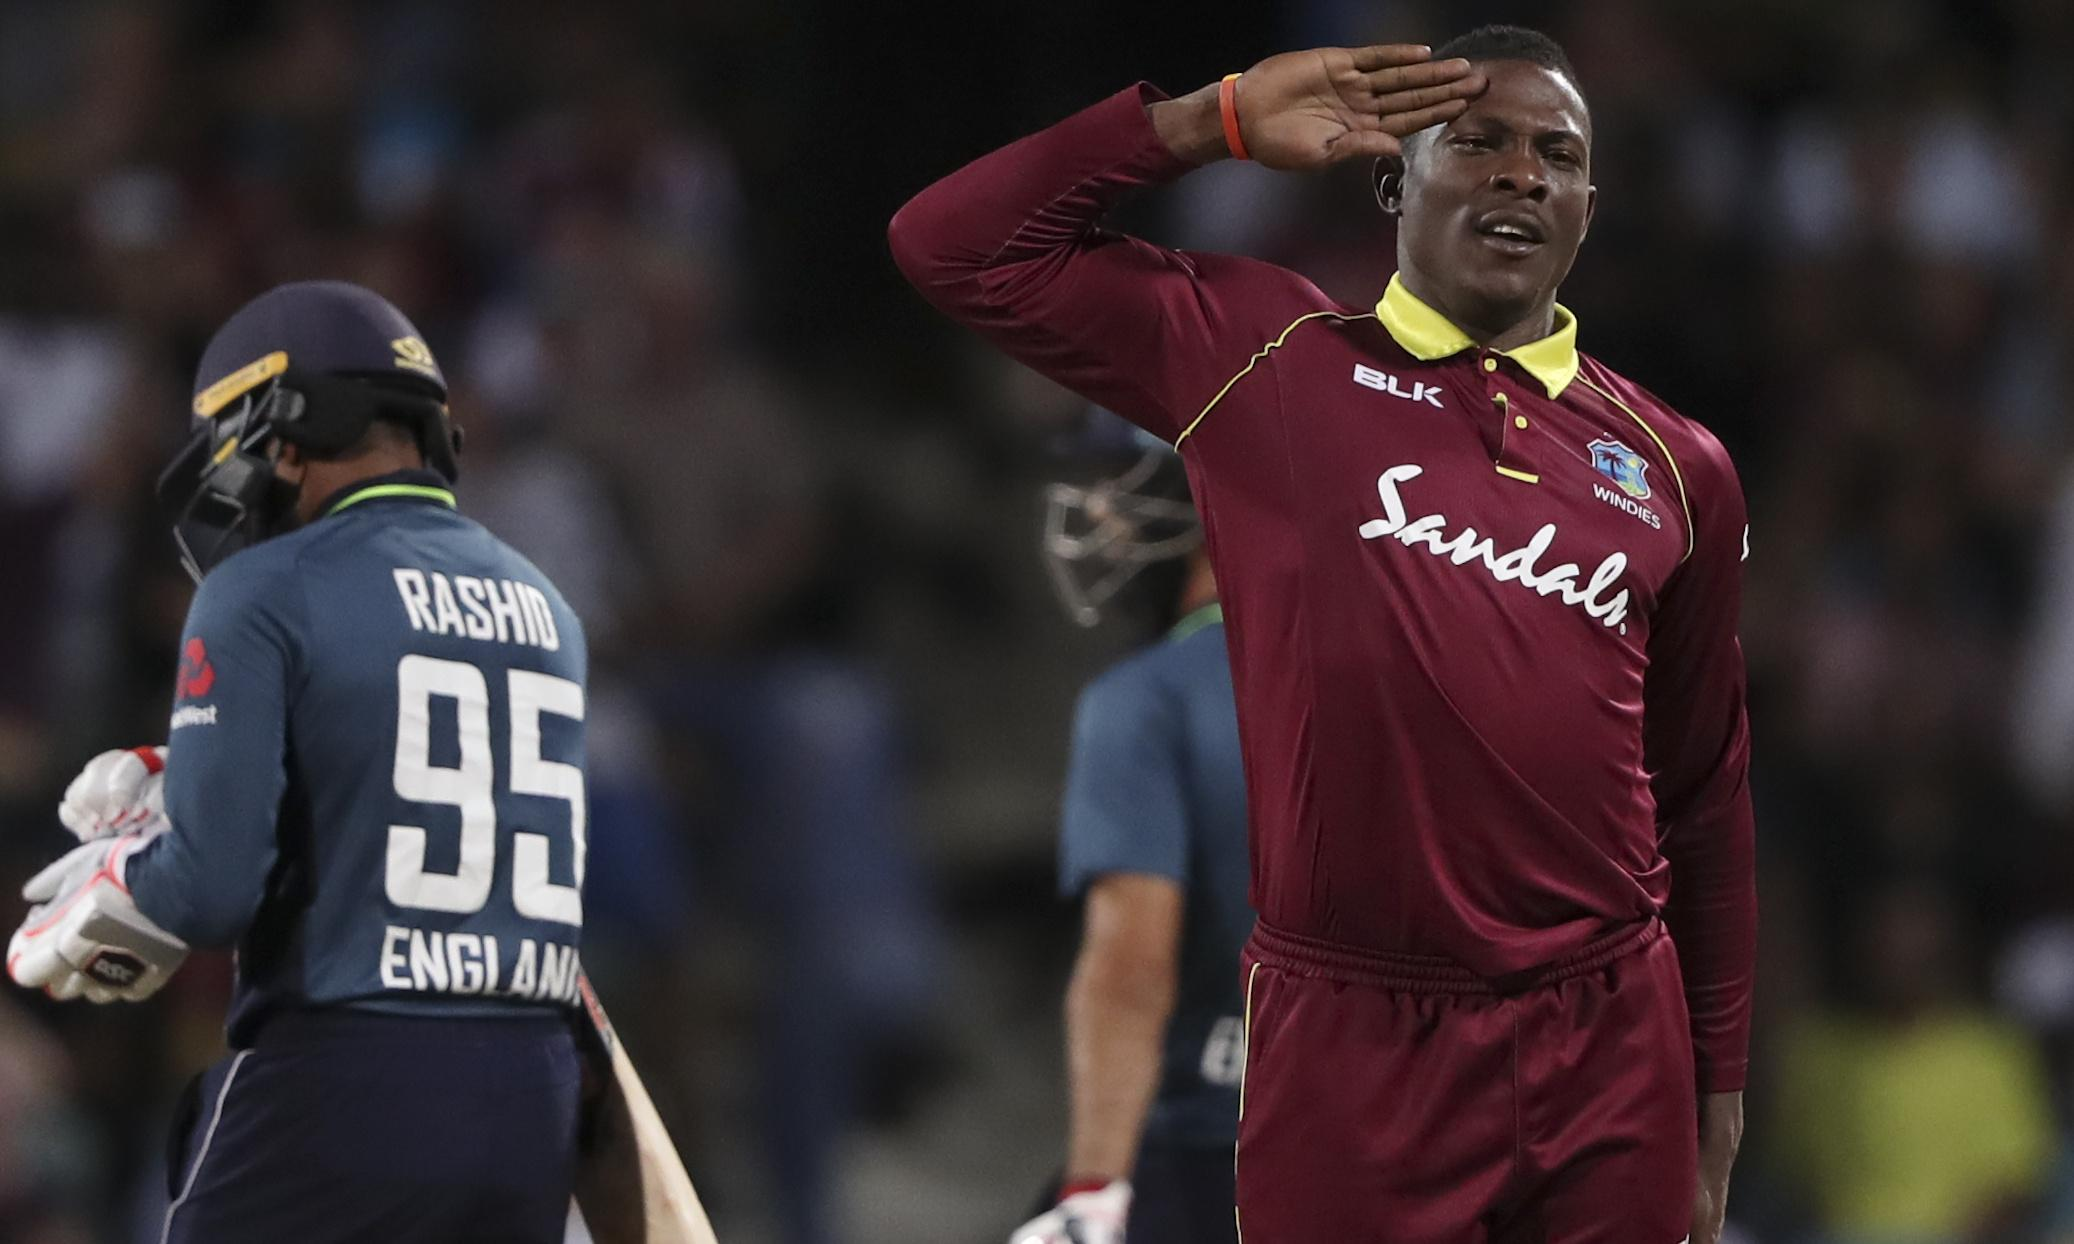 England blown away by West Indies seamer Sheldon Cottrell in second ODI